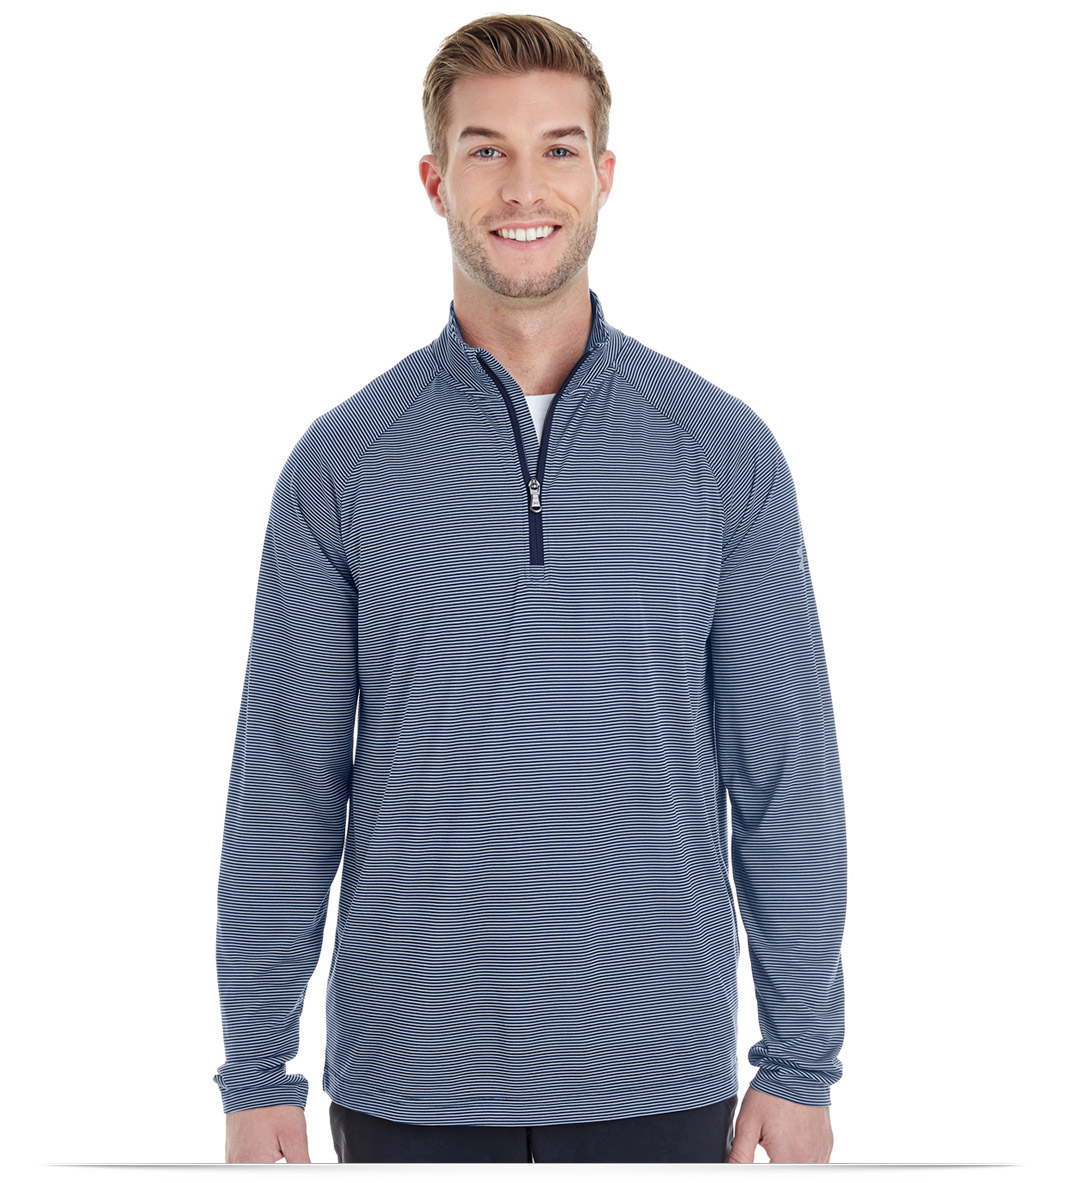 Embroidered Under Armour Men's Quarter Zip Pullover